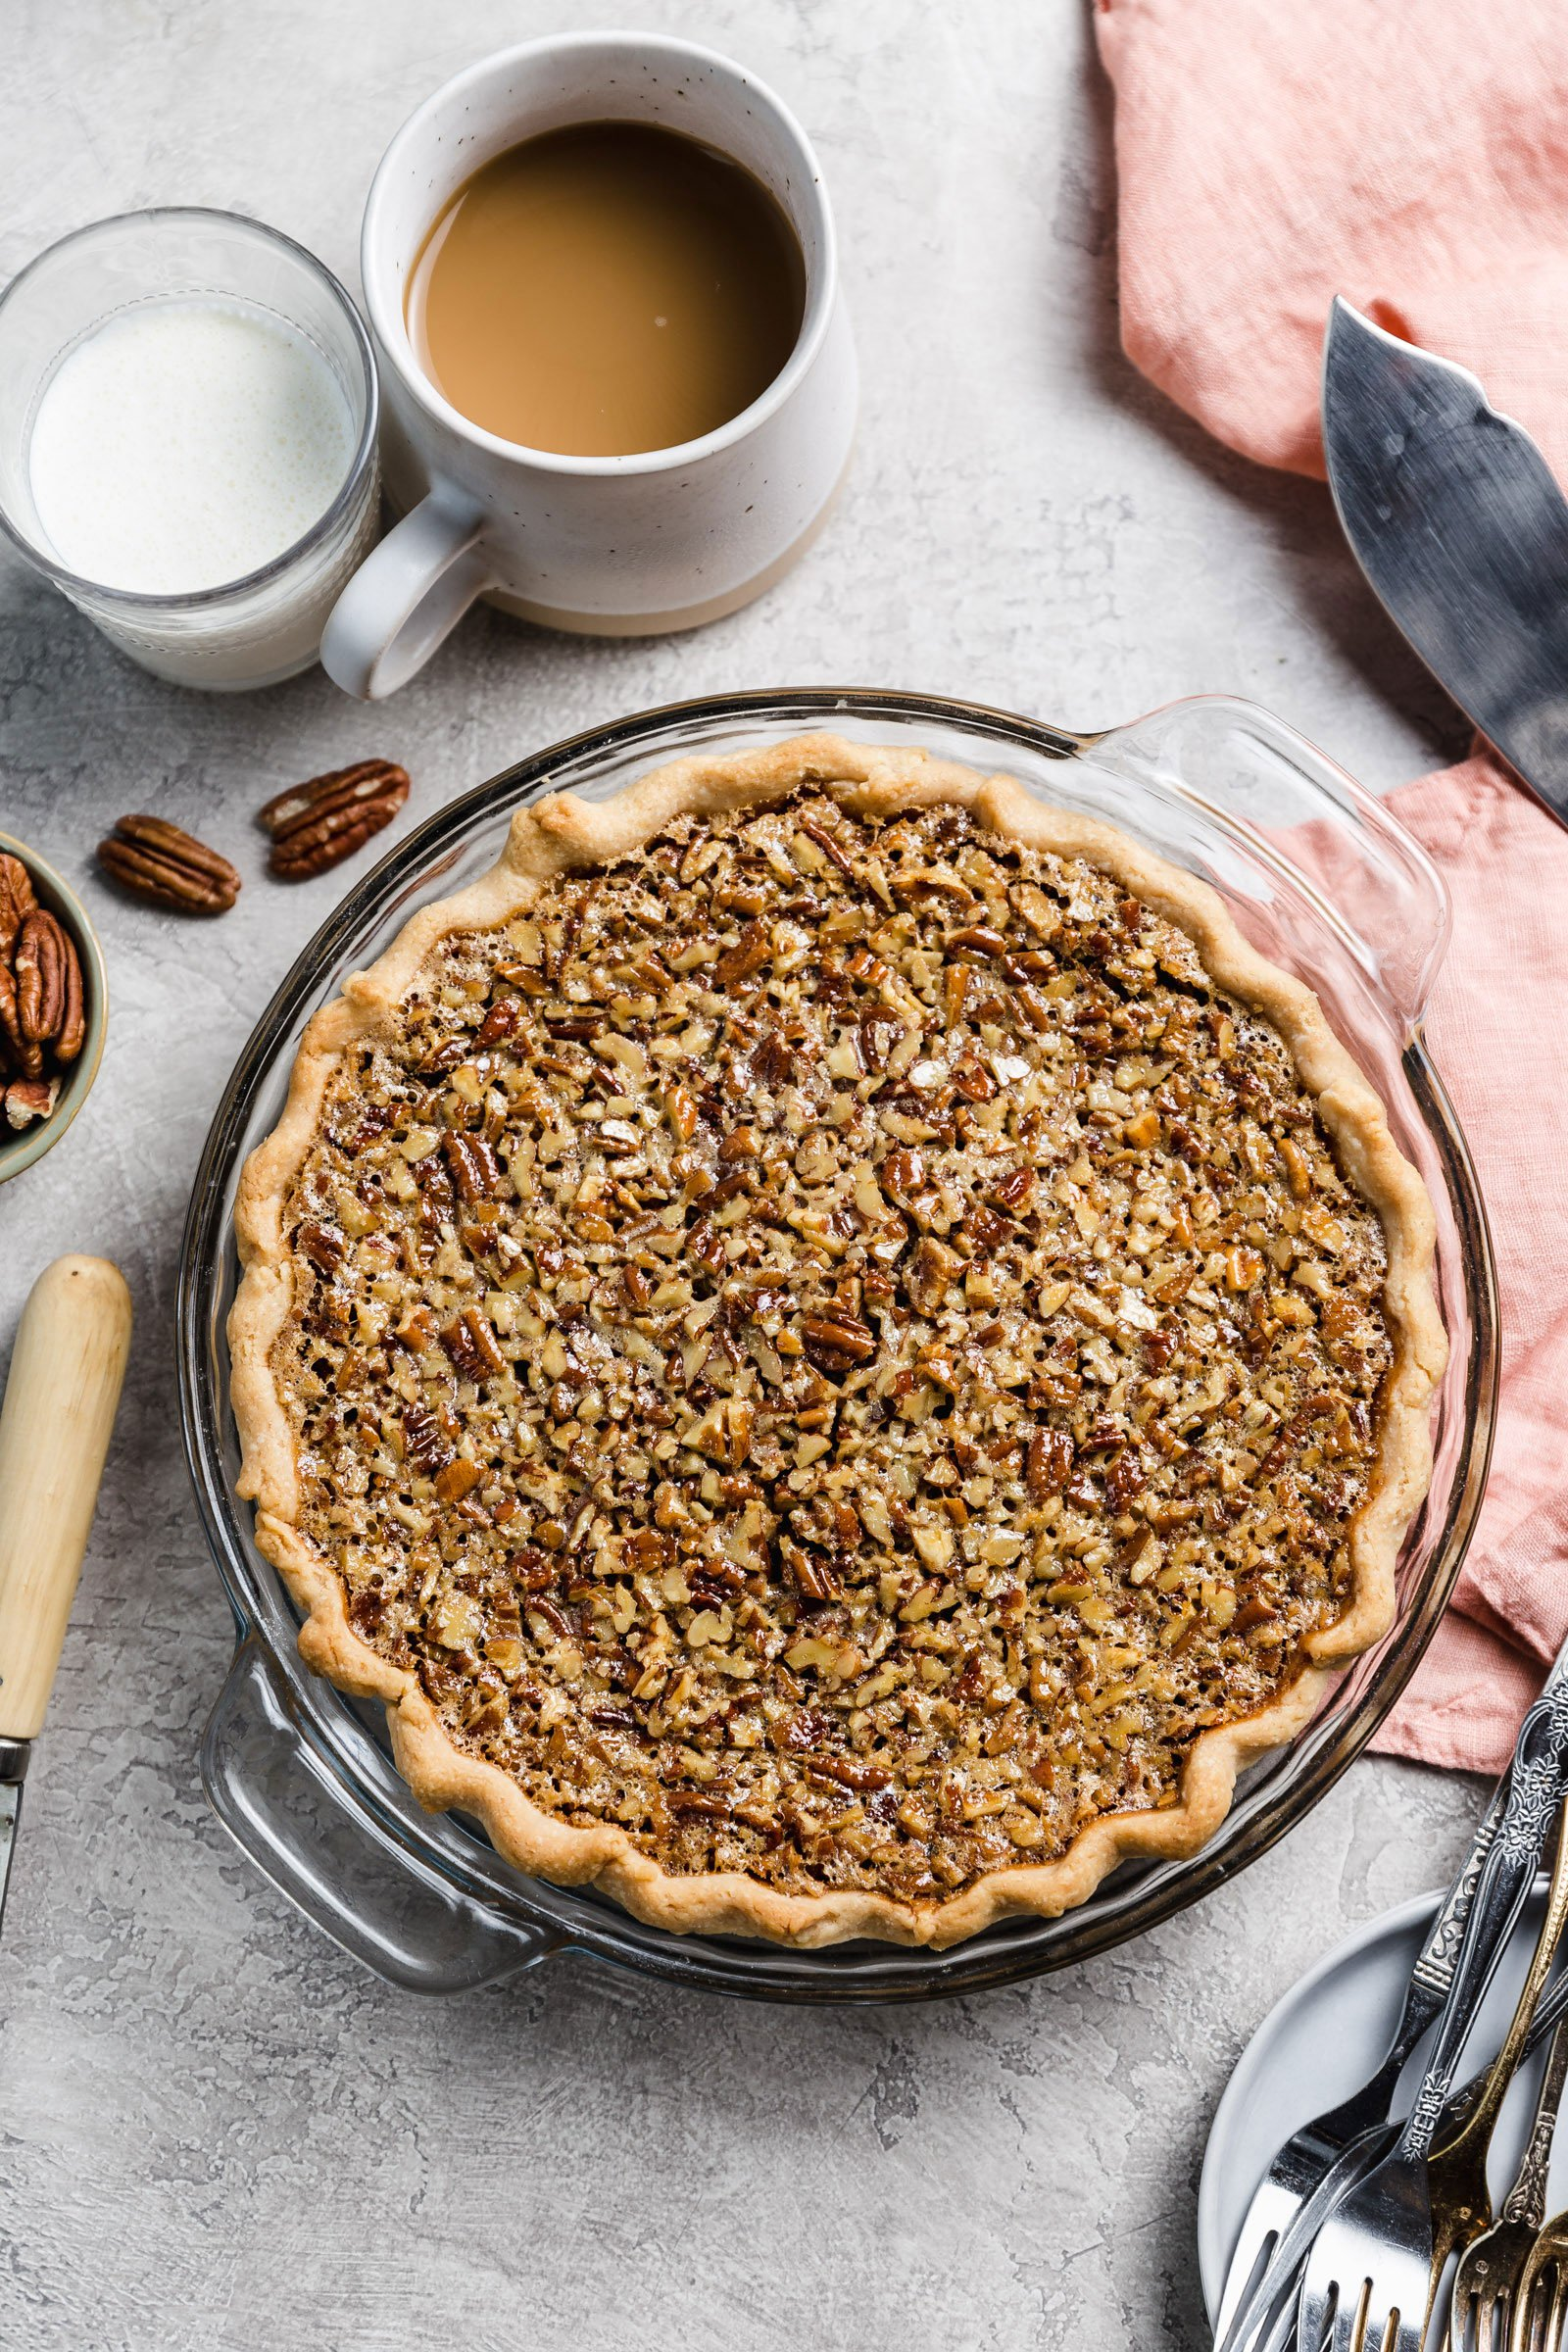 Overhead photo of baked pecan pie with forks and a cup of coffee next to it.